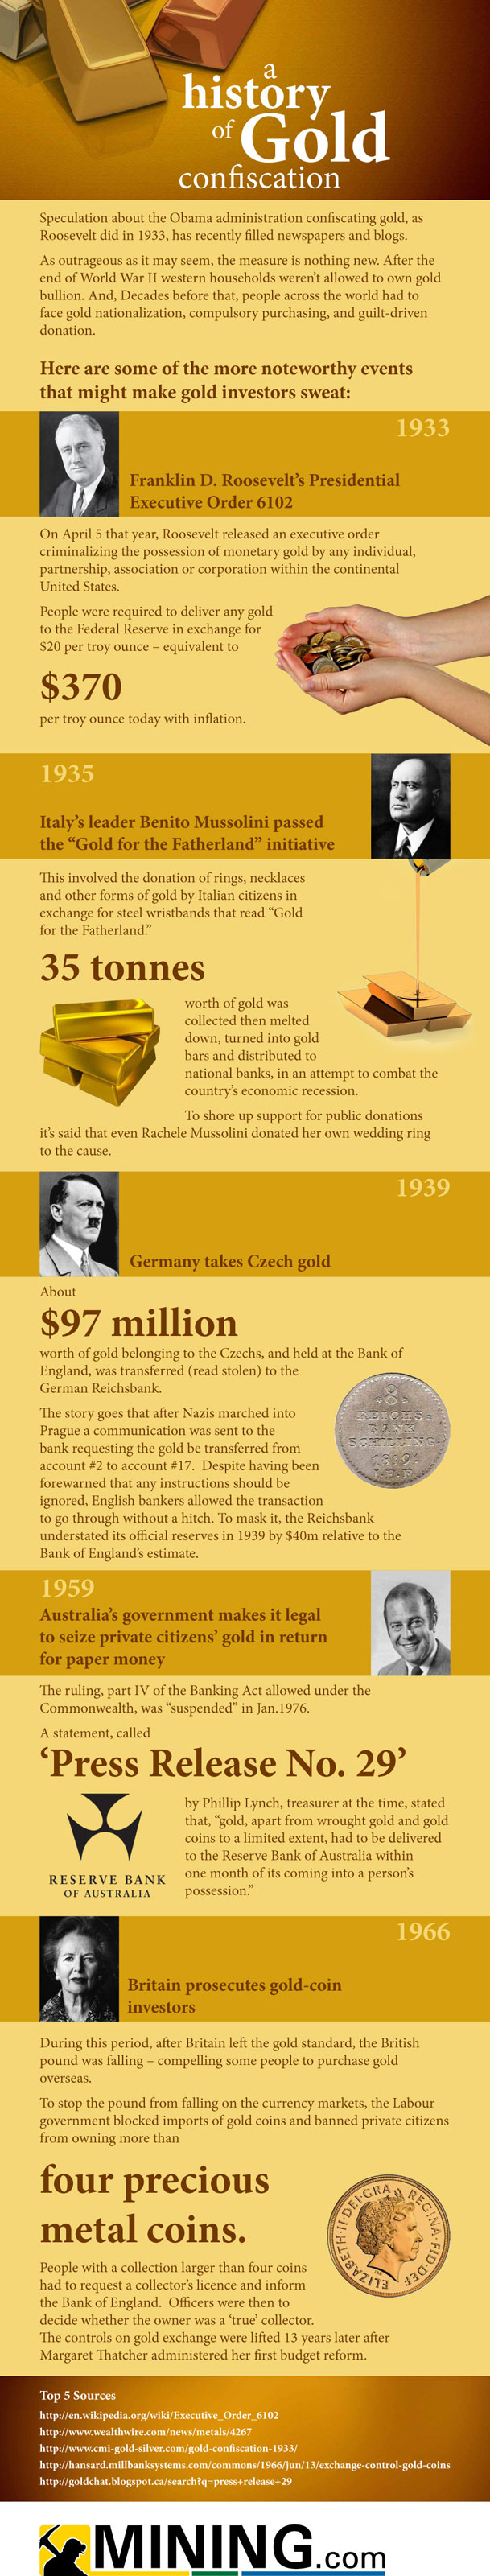 A history of gold confiscation [INFOGRAPHIC]